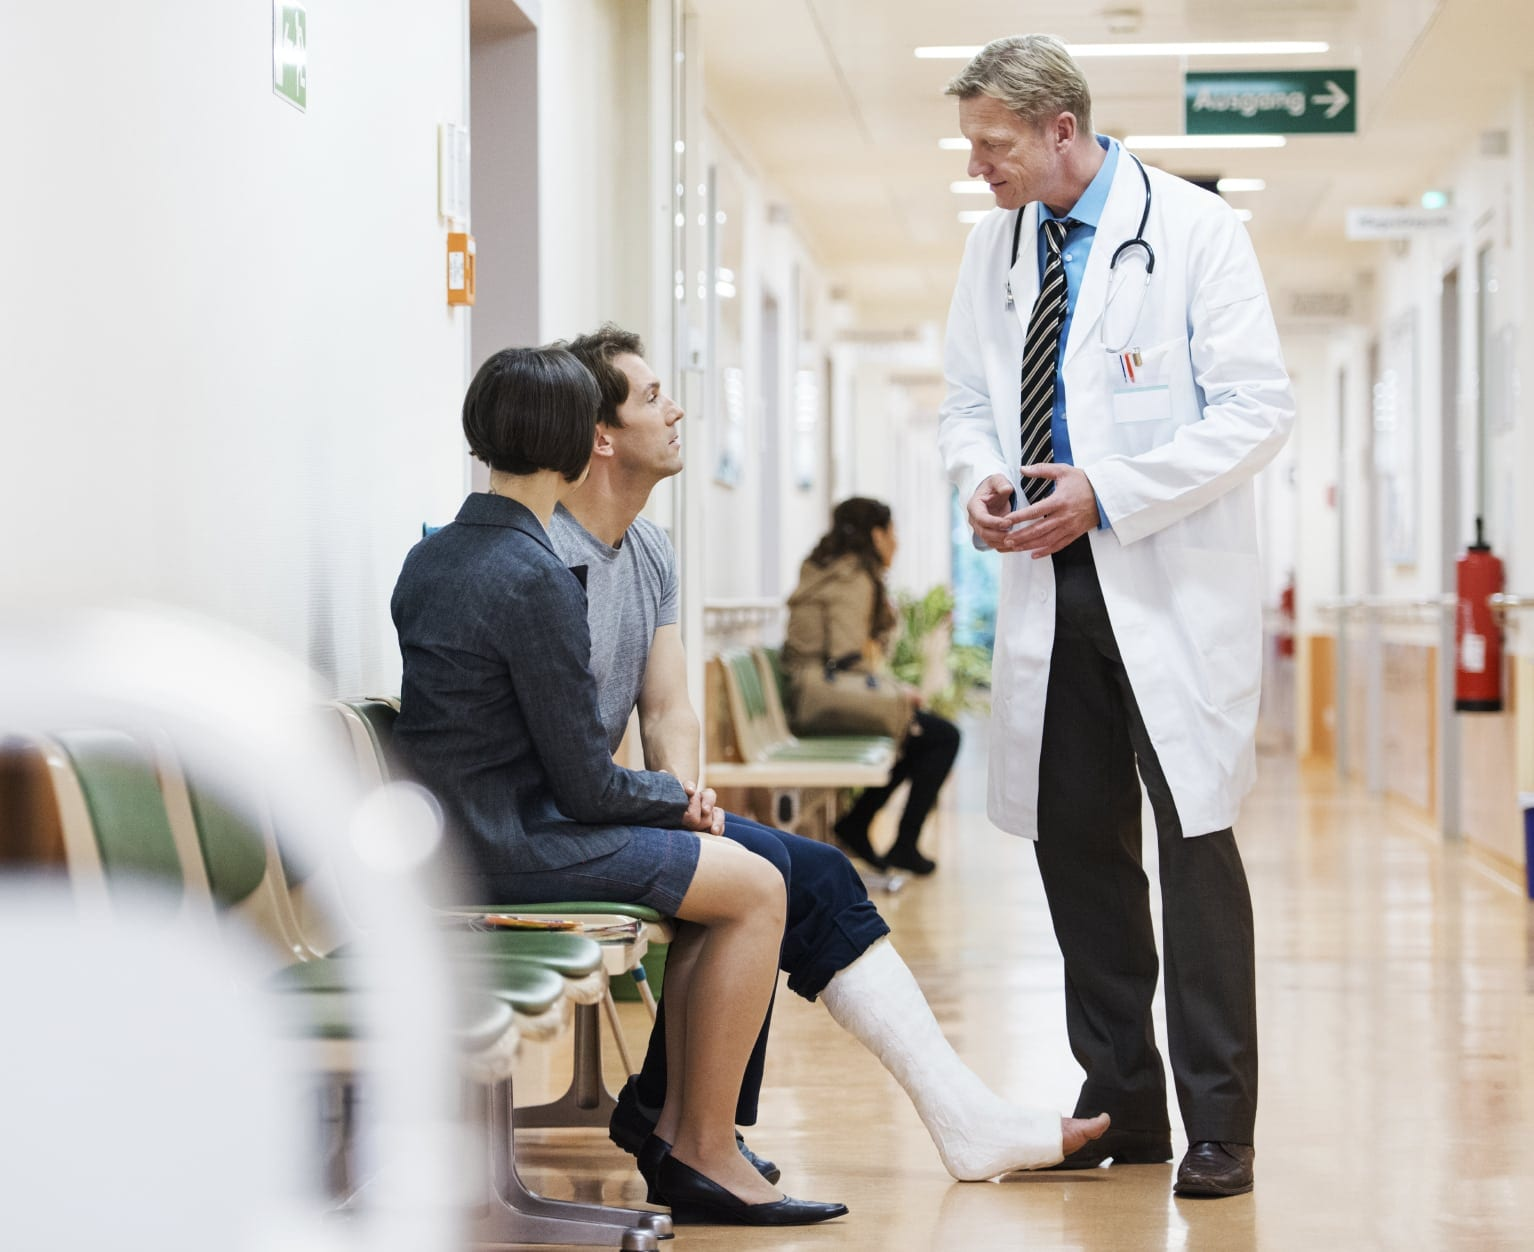 Physician Speaking With Injured Man And Wife Stock Photo